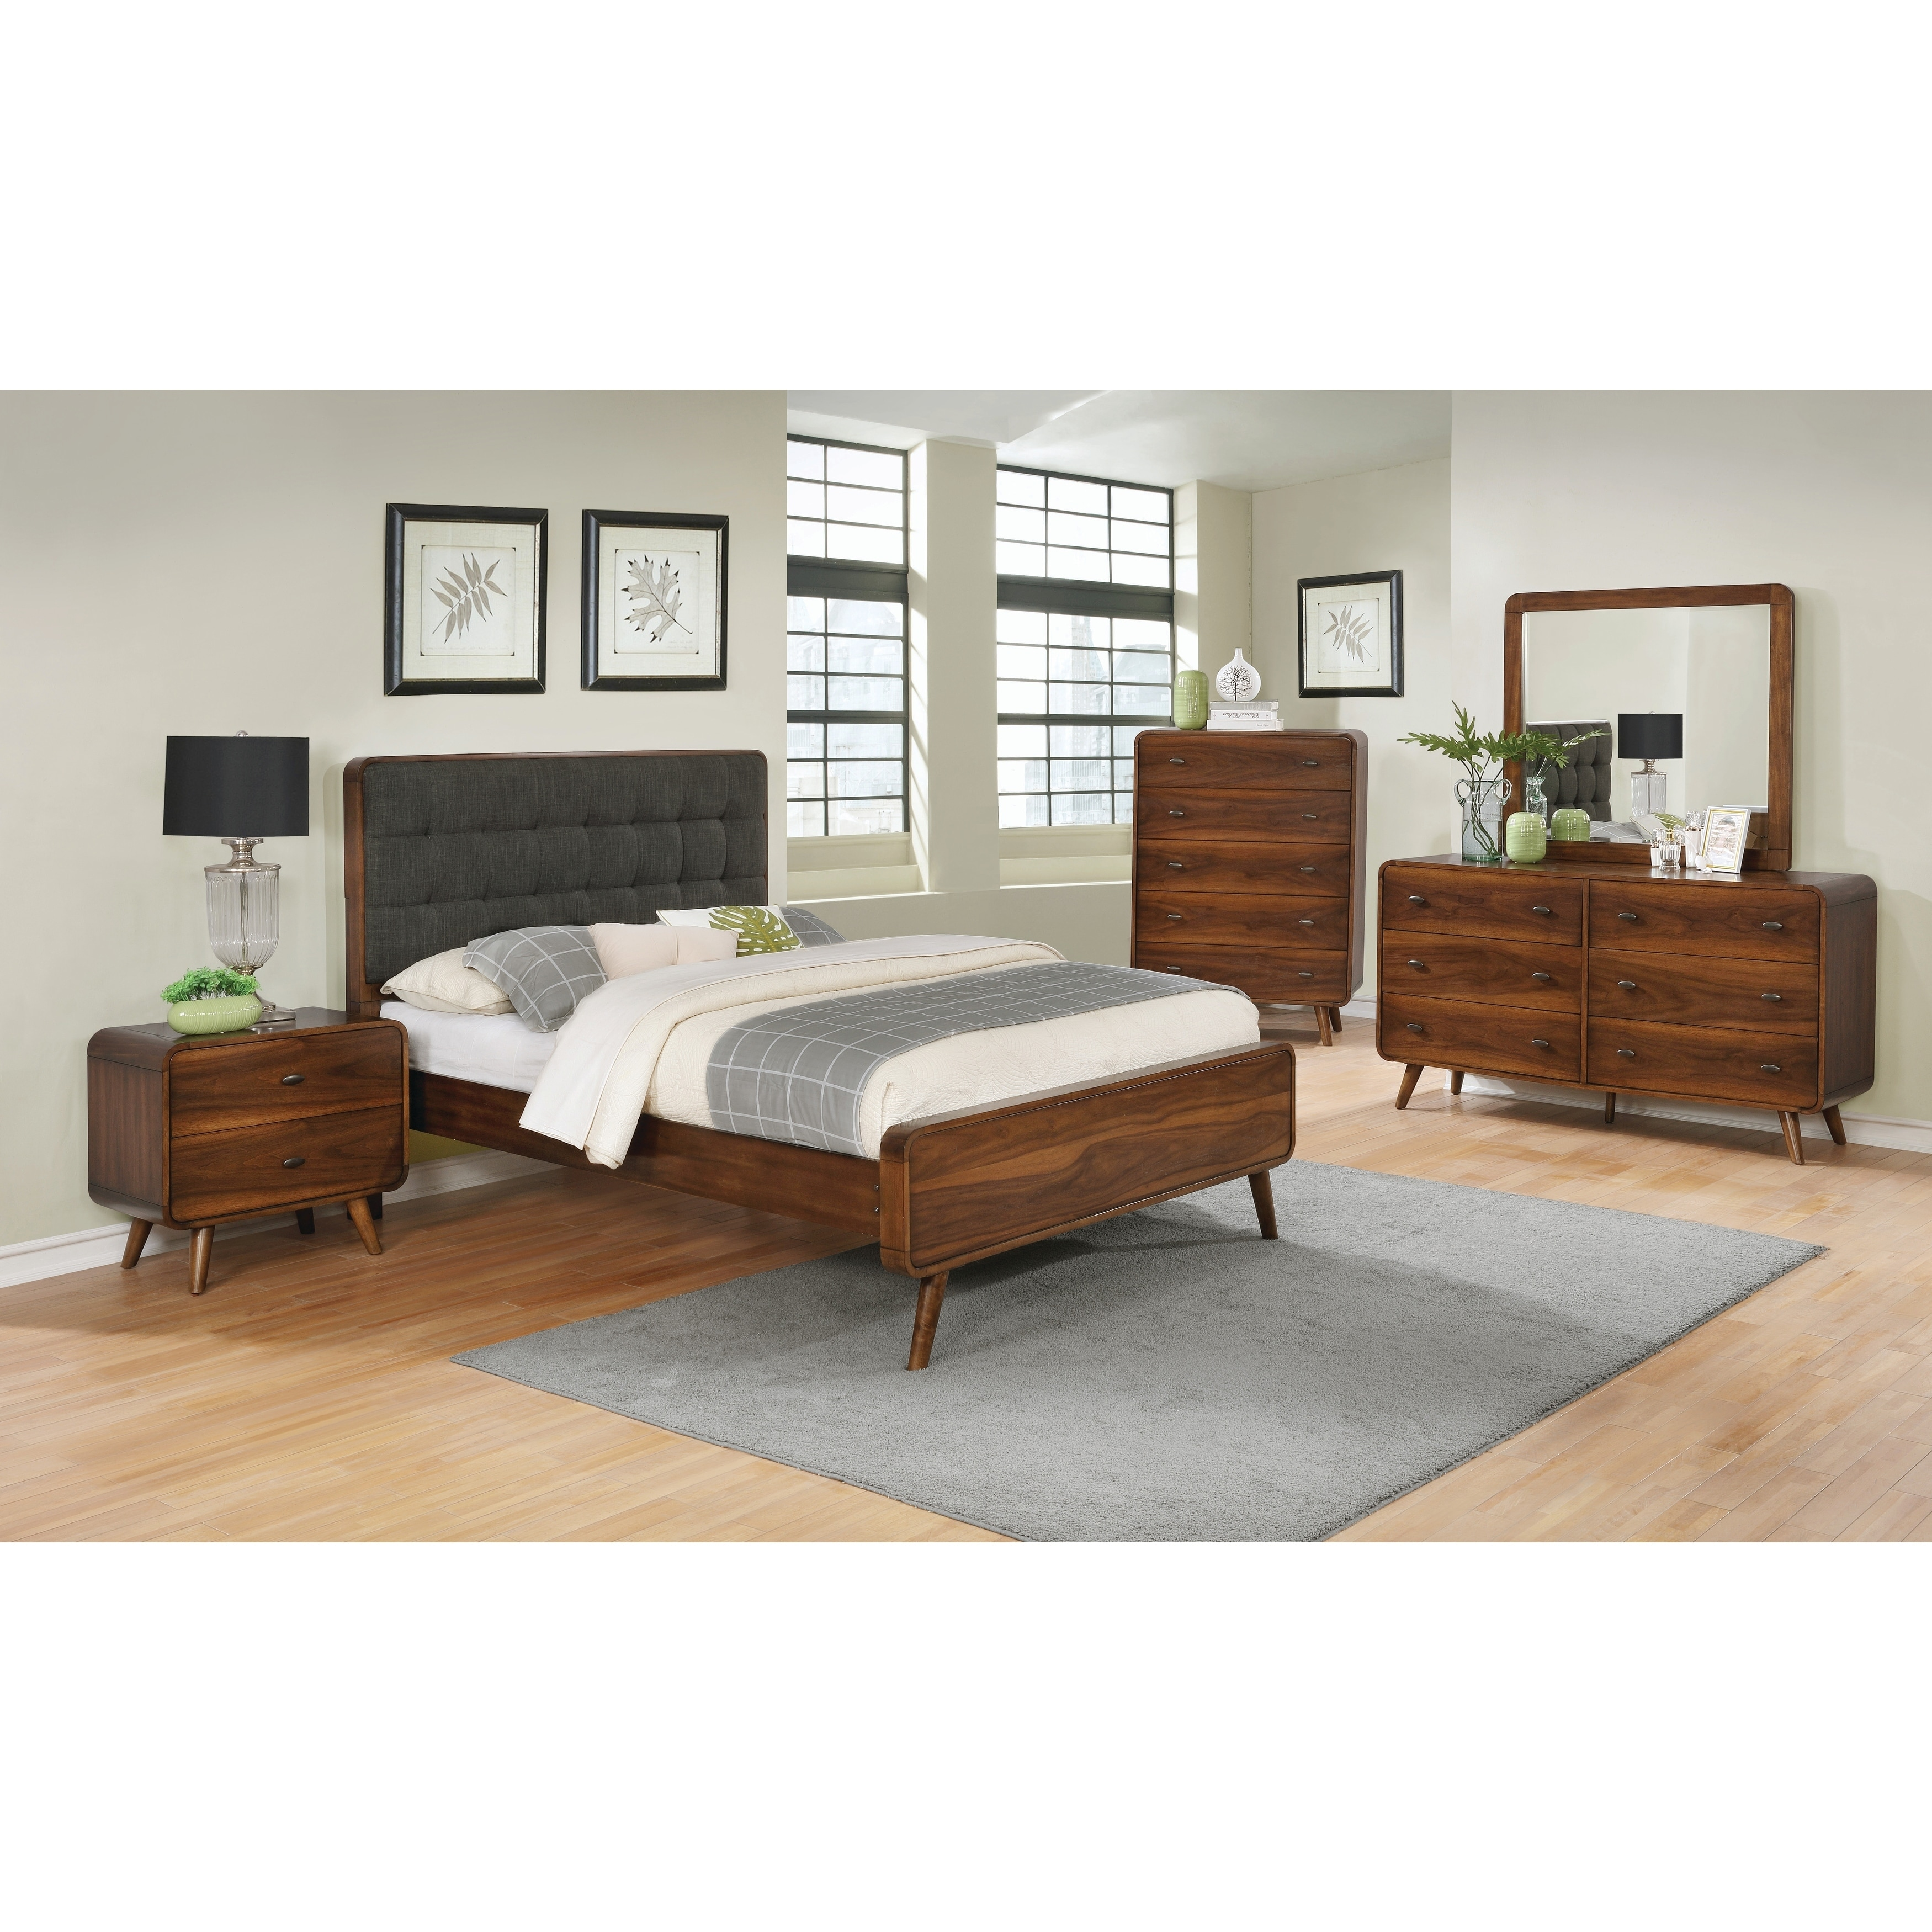 3f46a23cb4d2 Shop Robyn Mid-century Modern Dark Walnut 4-piece Bedroom Set - On ...